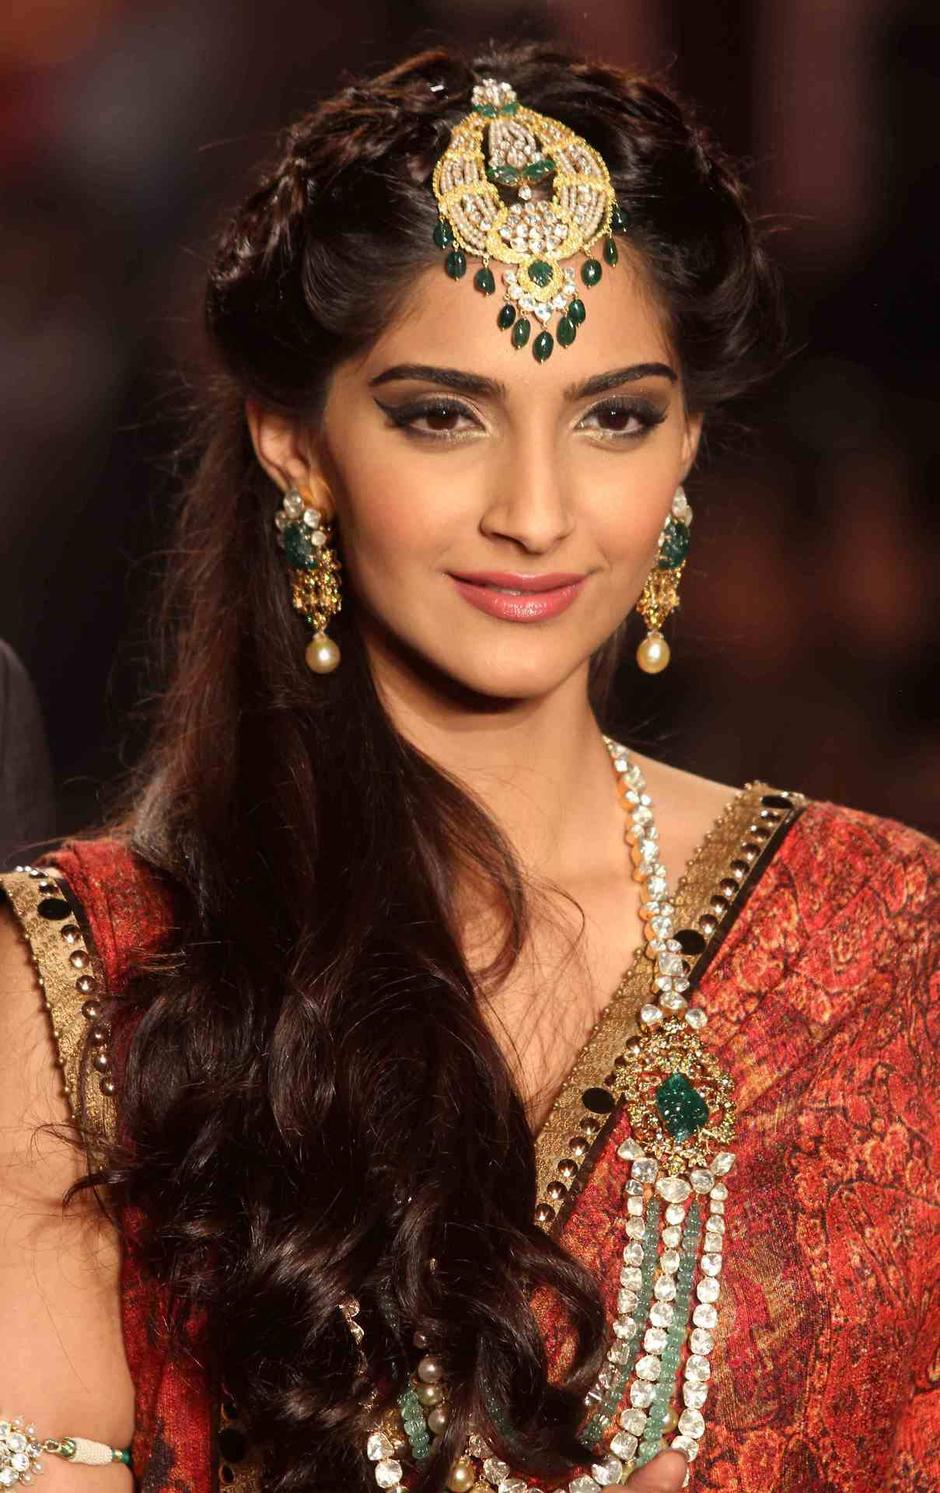 Sonam Kapoor wearing a saree with a forehead drop.